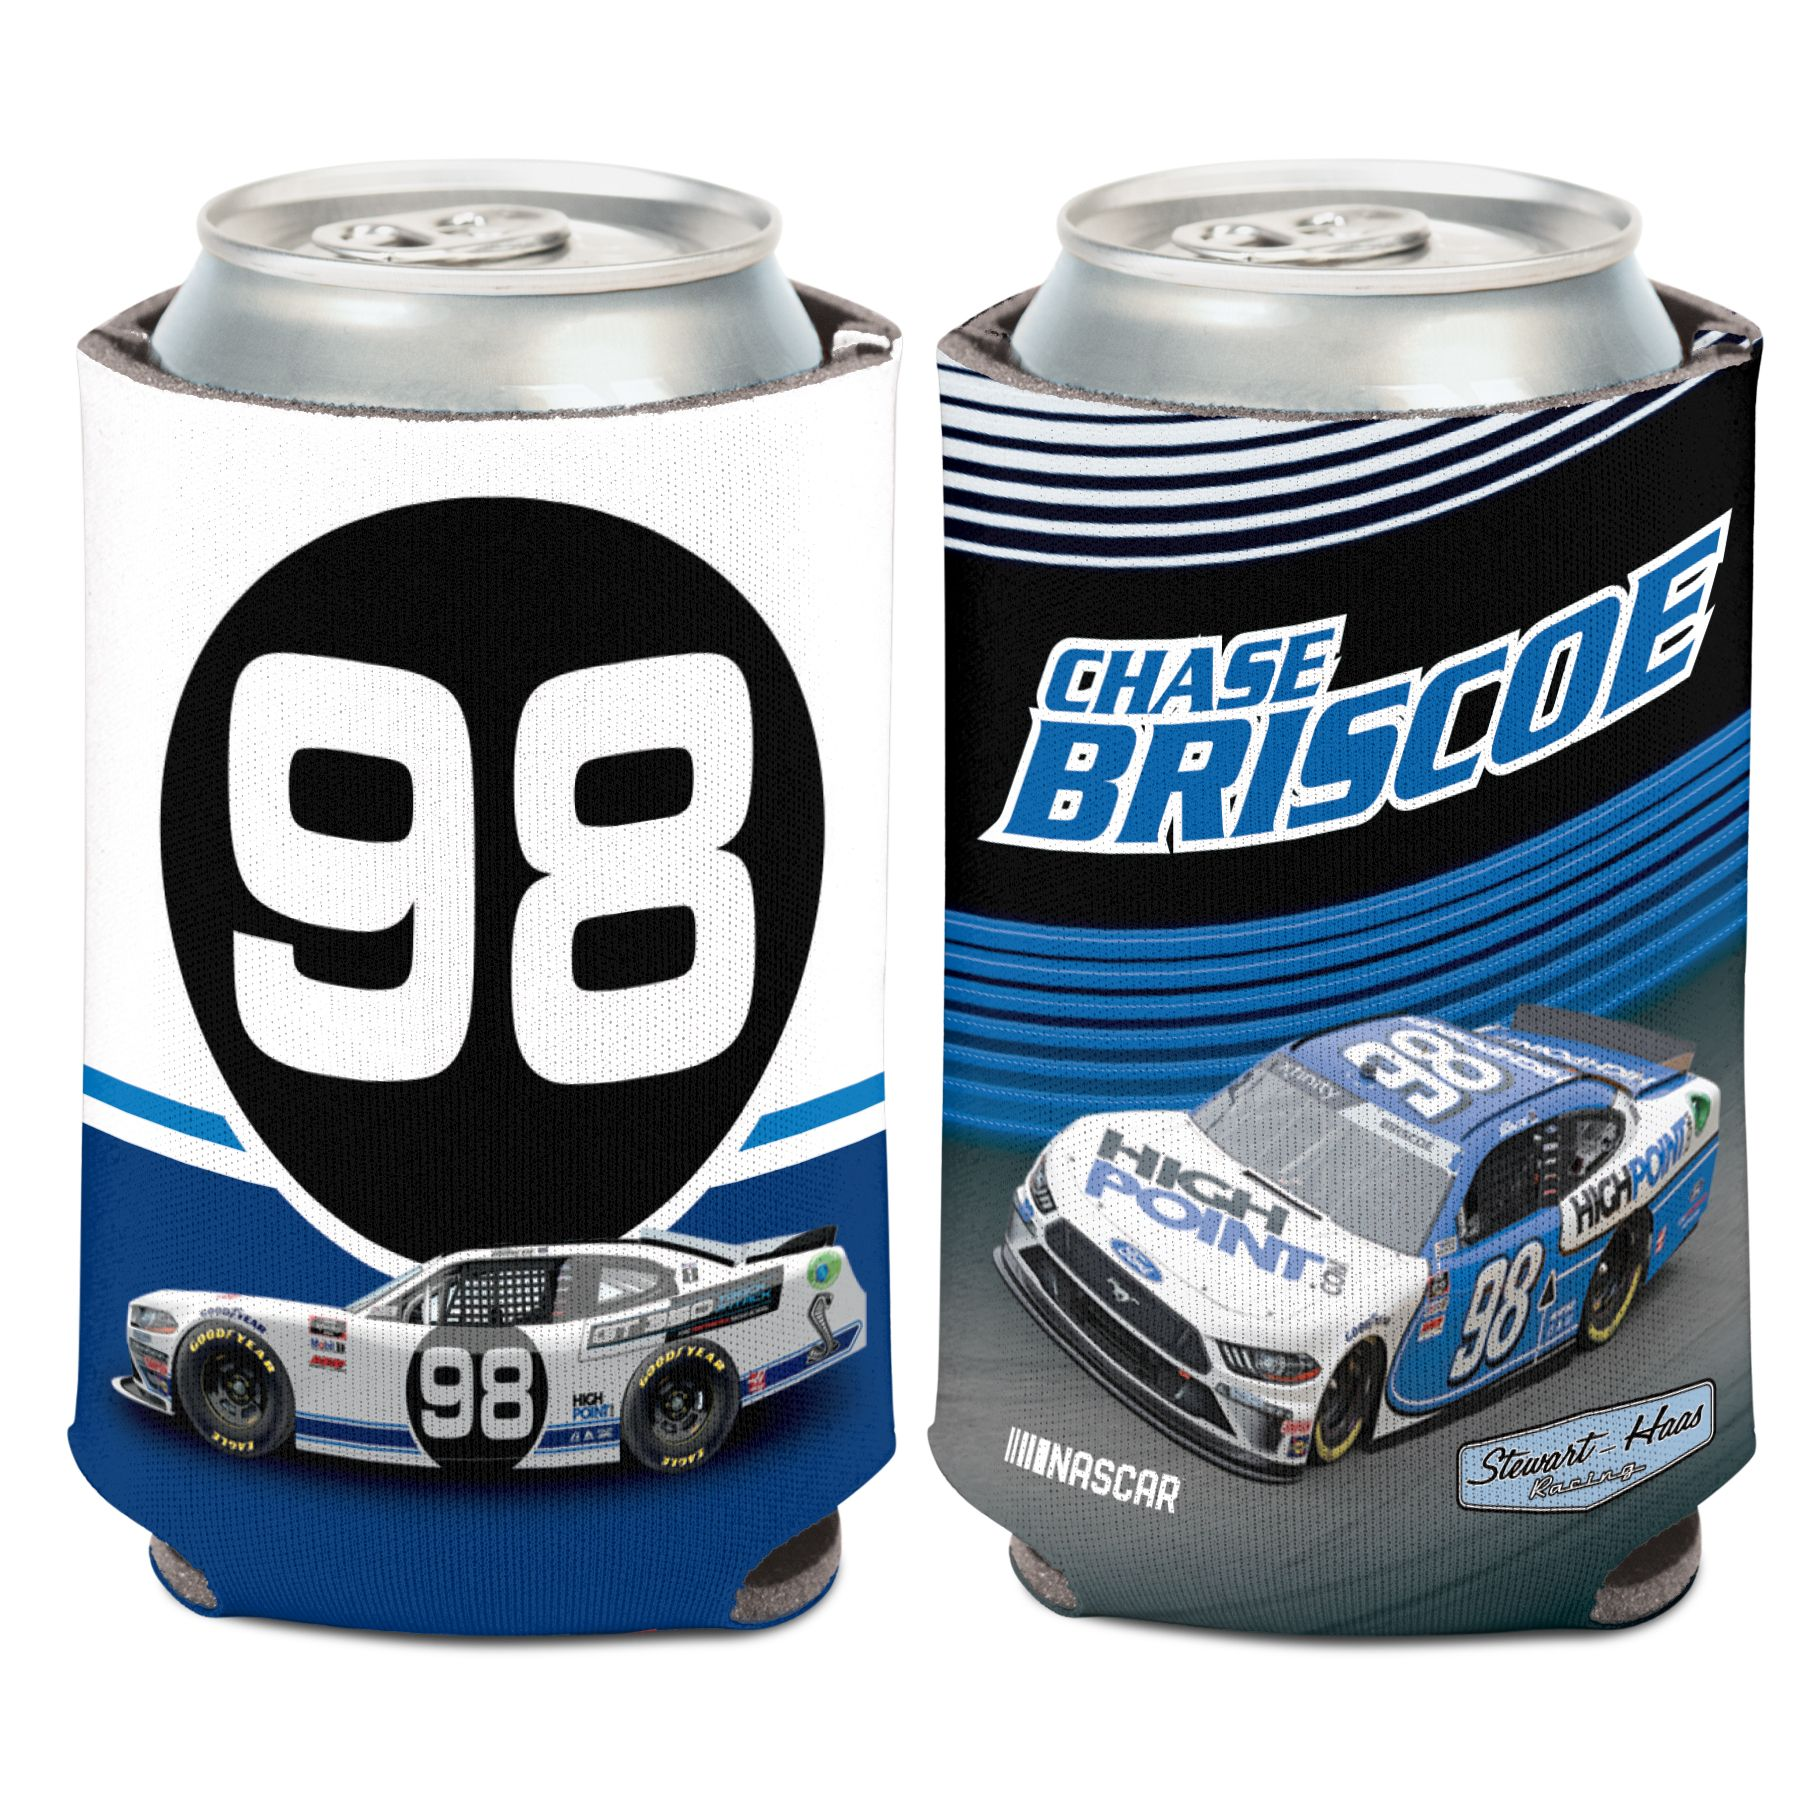 Chase Briscoe Xfinity Stewart-Haas Racing Can Cooler